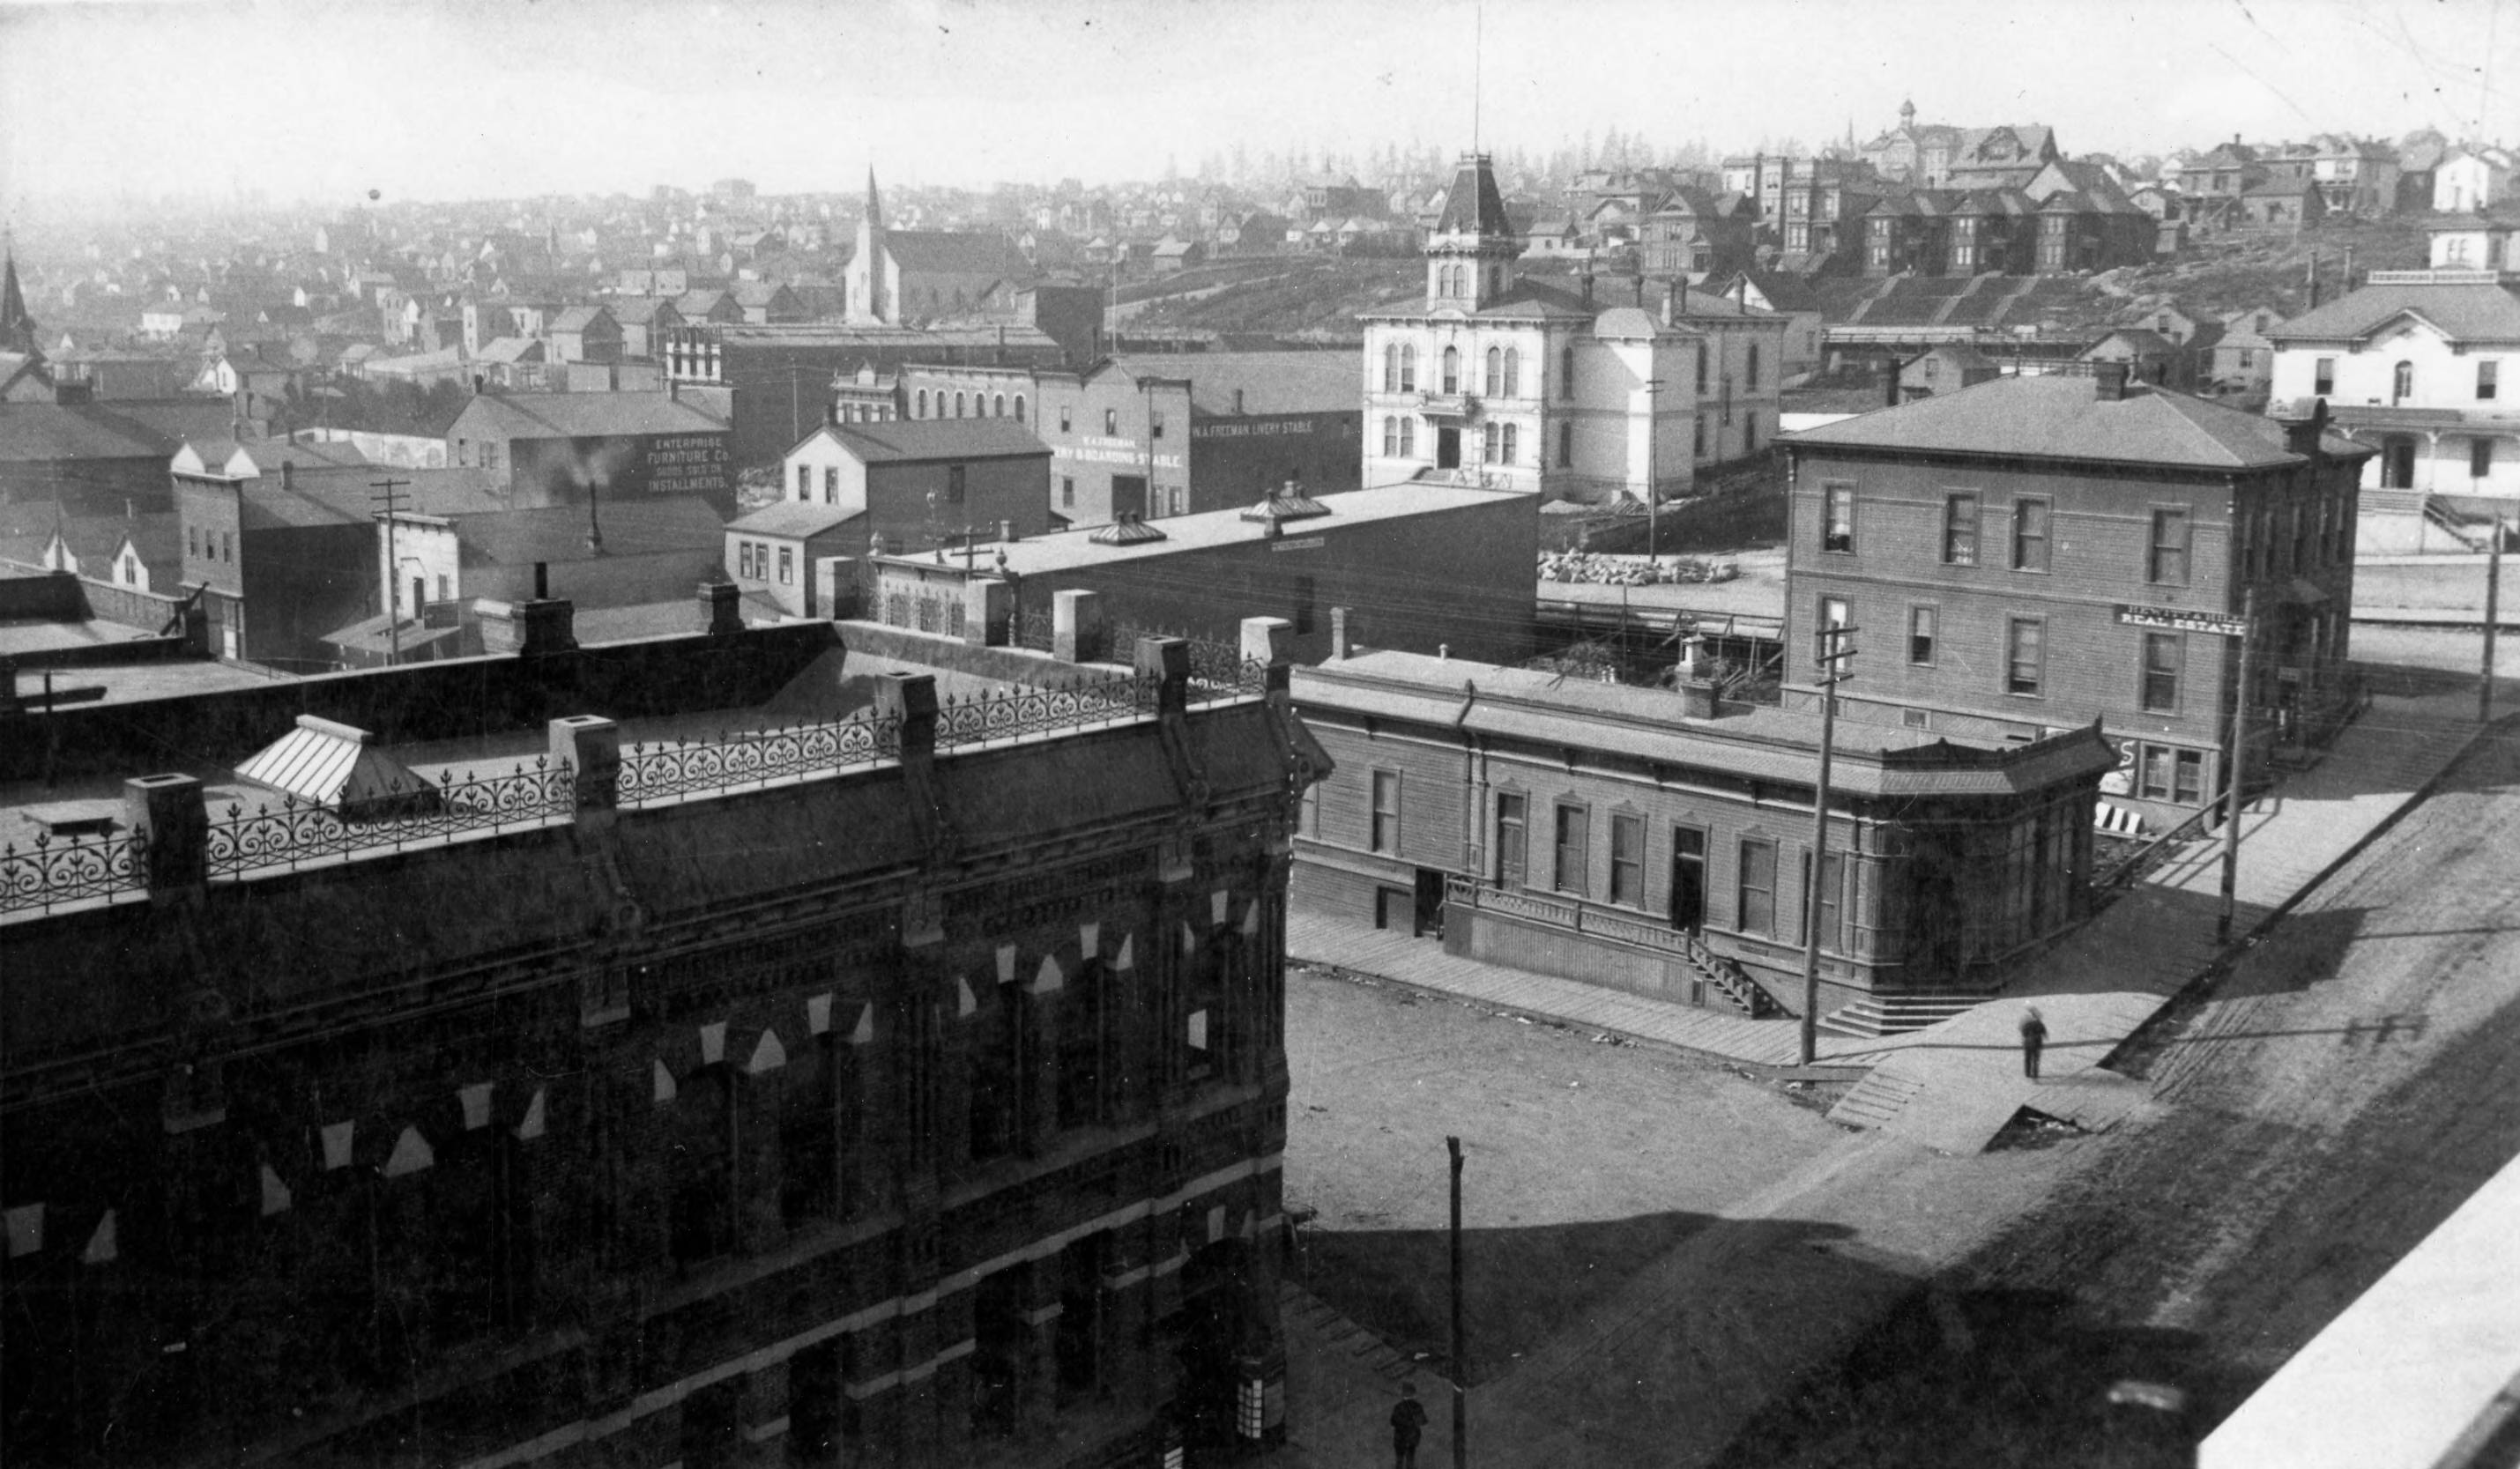 View of 9th & Broadway, circa 1885.  White building in upper part of image is Pierce County Courthouse.